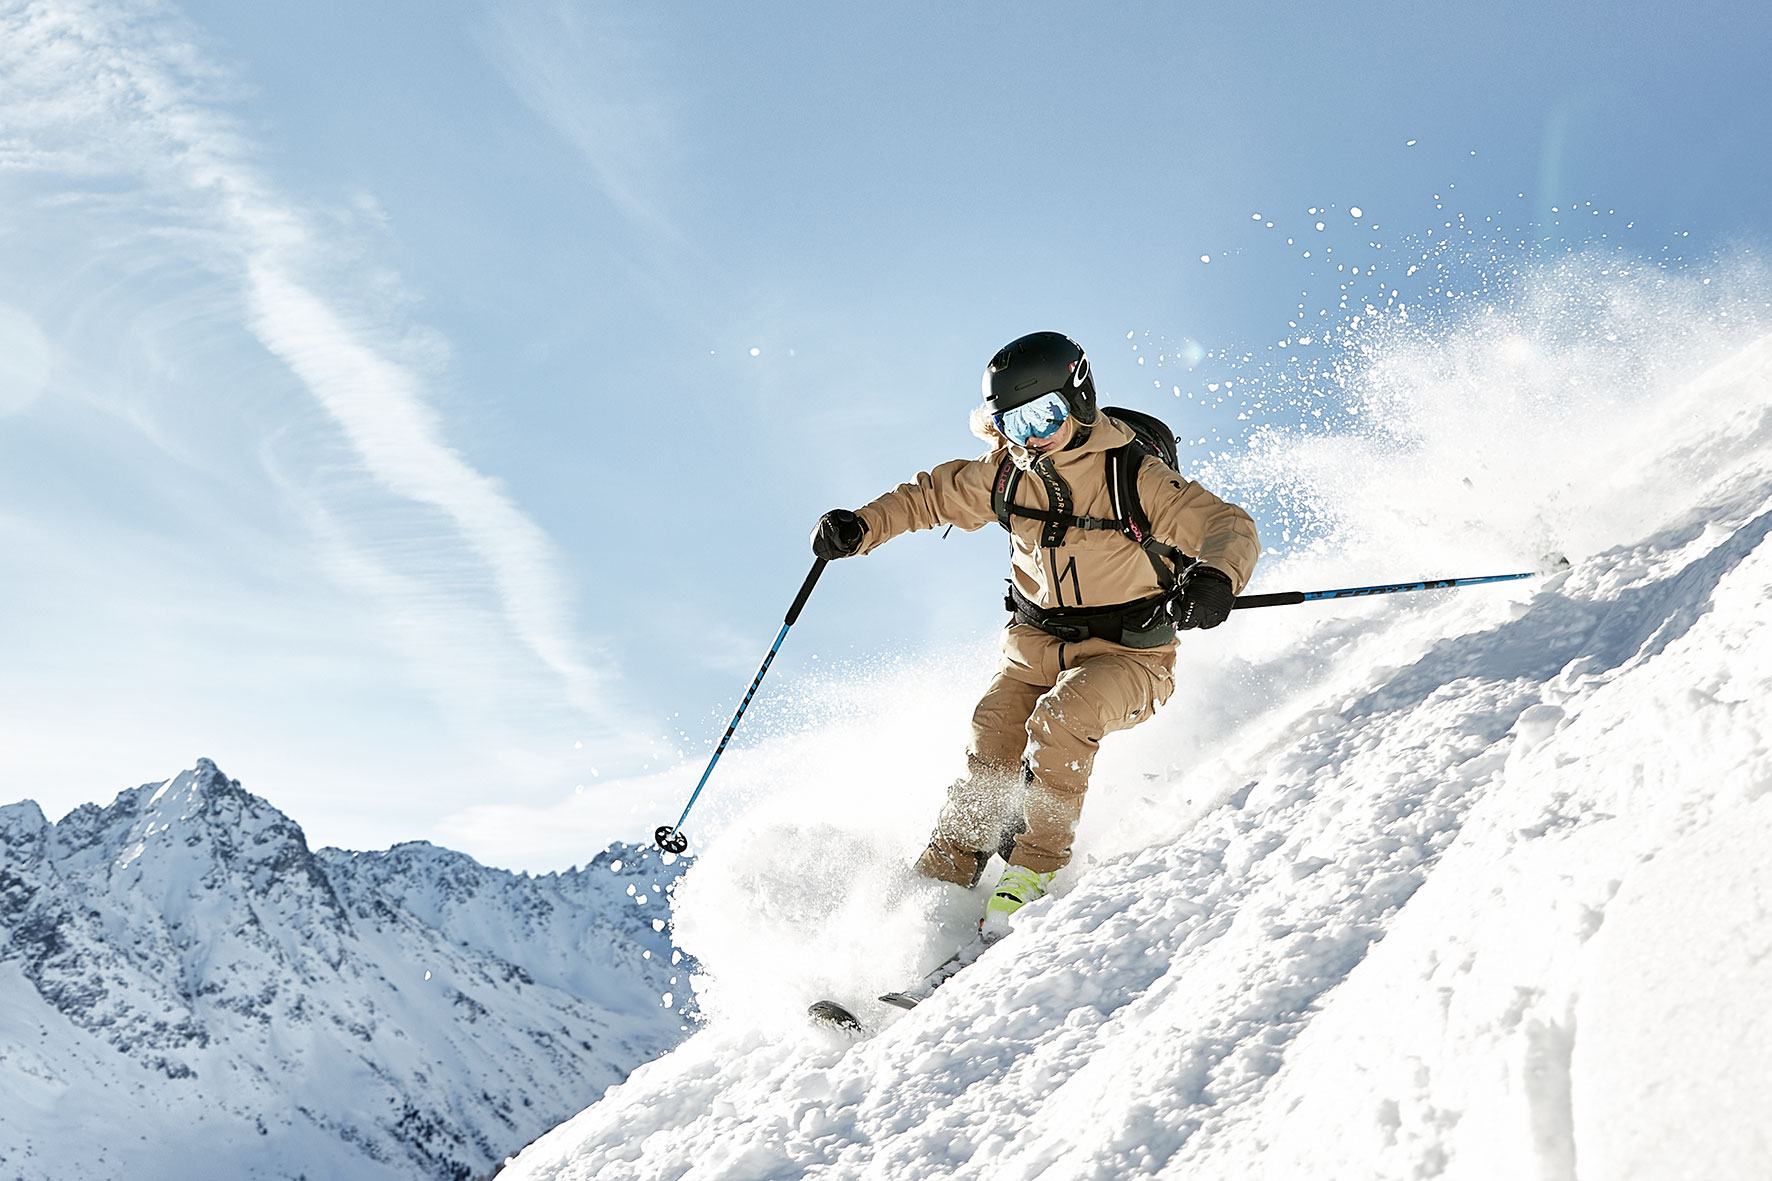 Woman skiing down a steep slope in the Alps near Innsbruck, with the snow spraying behind her and the mounains in the background